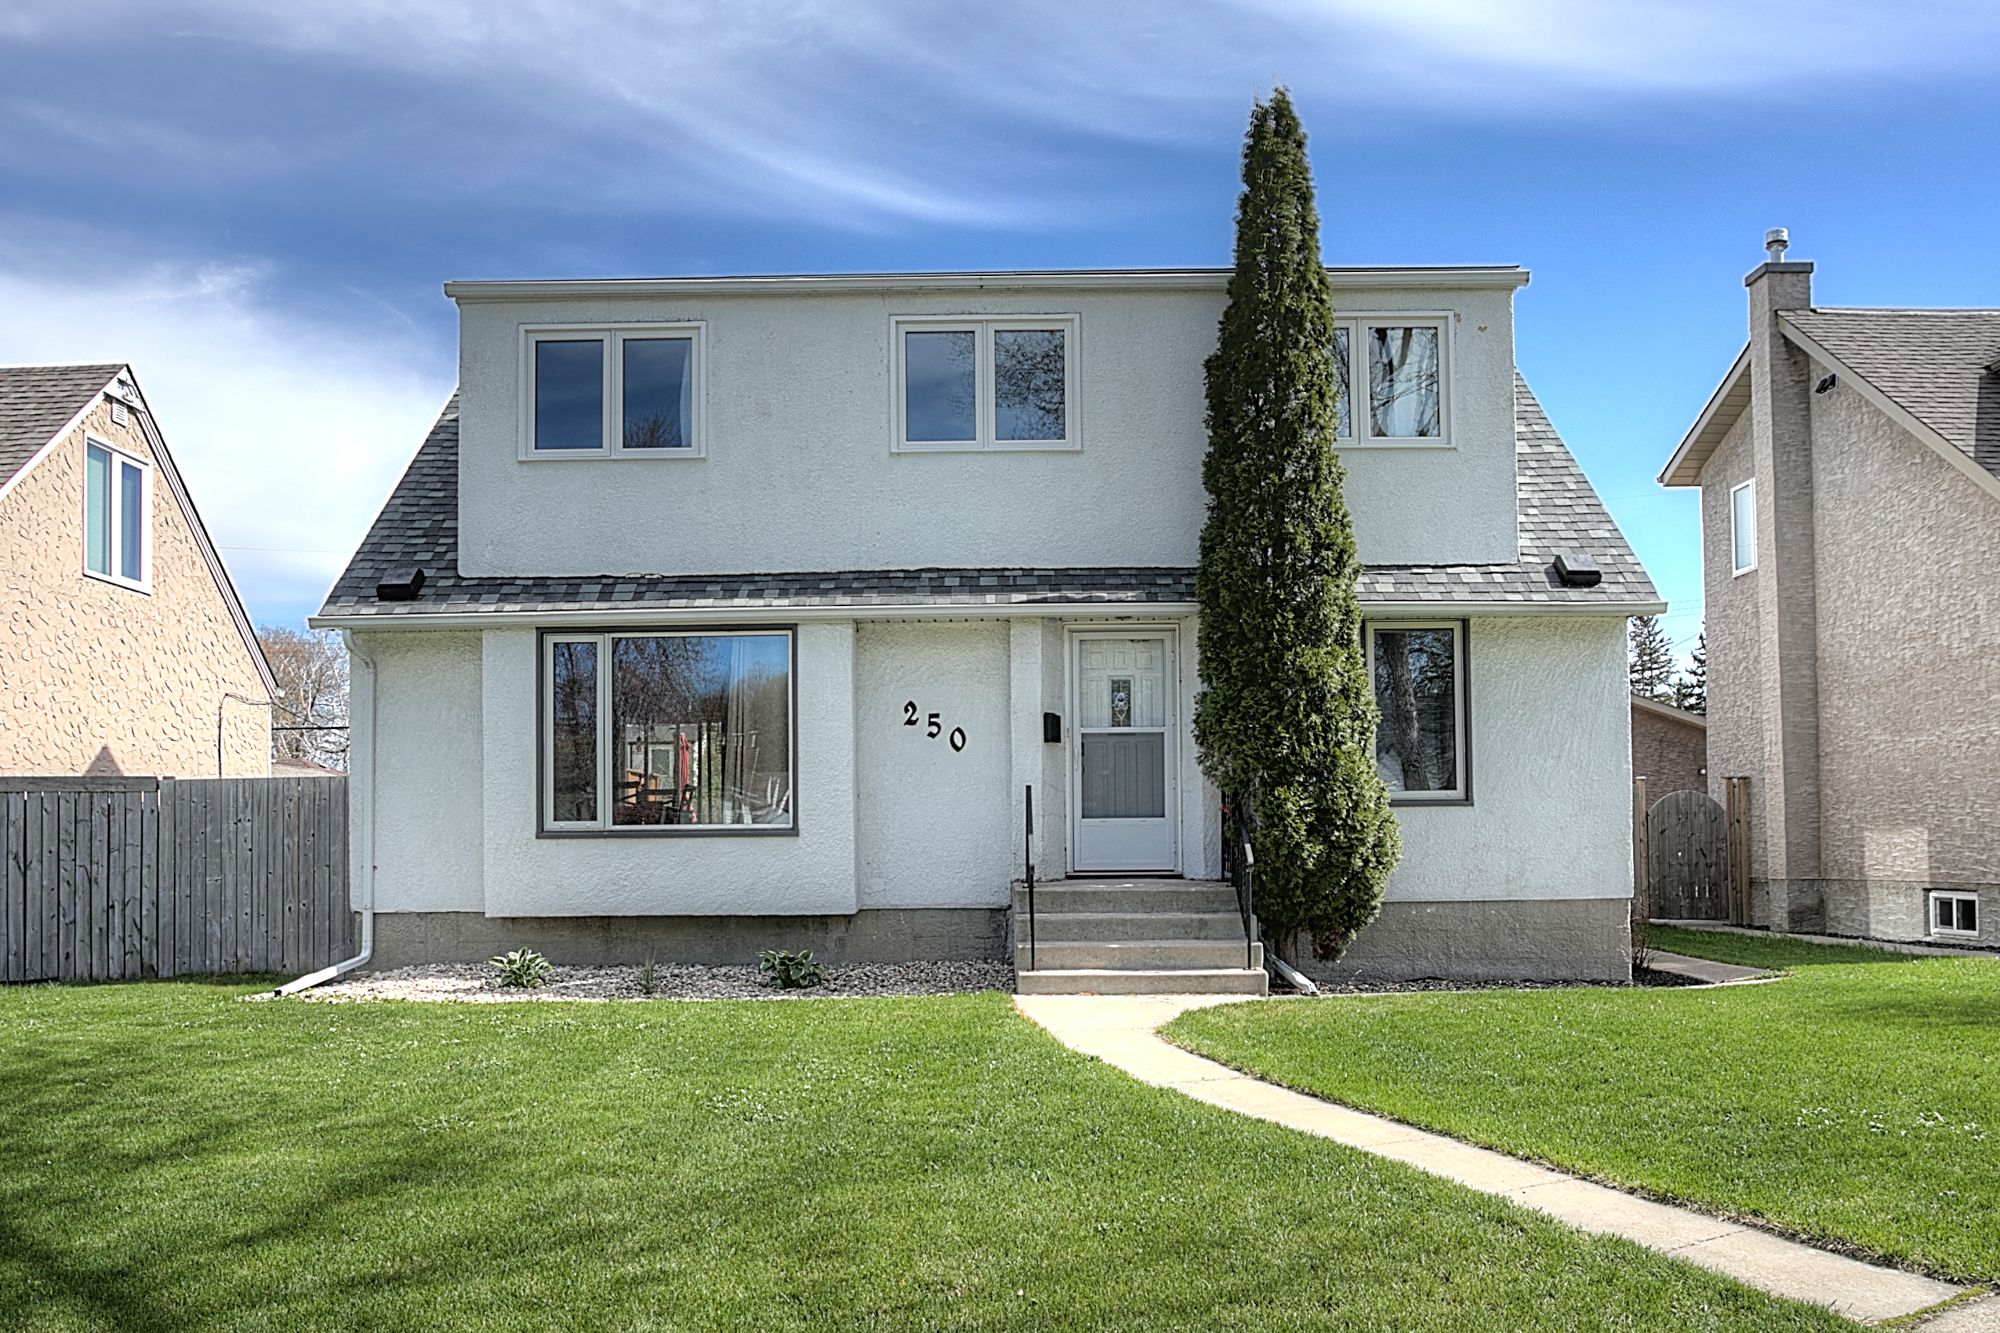 Main Photo: 250 Montgomery Avenue in Winnipeg: Riverview Single Family Detached for sale (1A)  : MLS®# 1913218